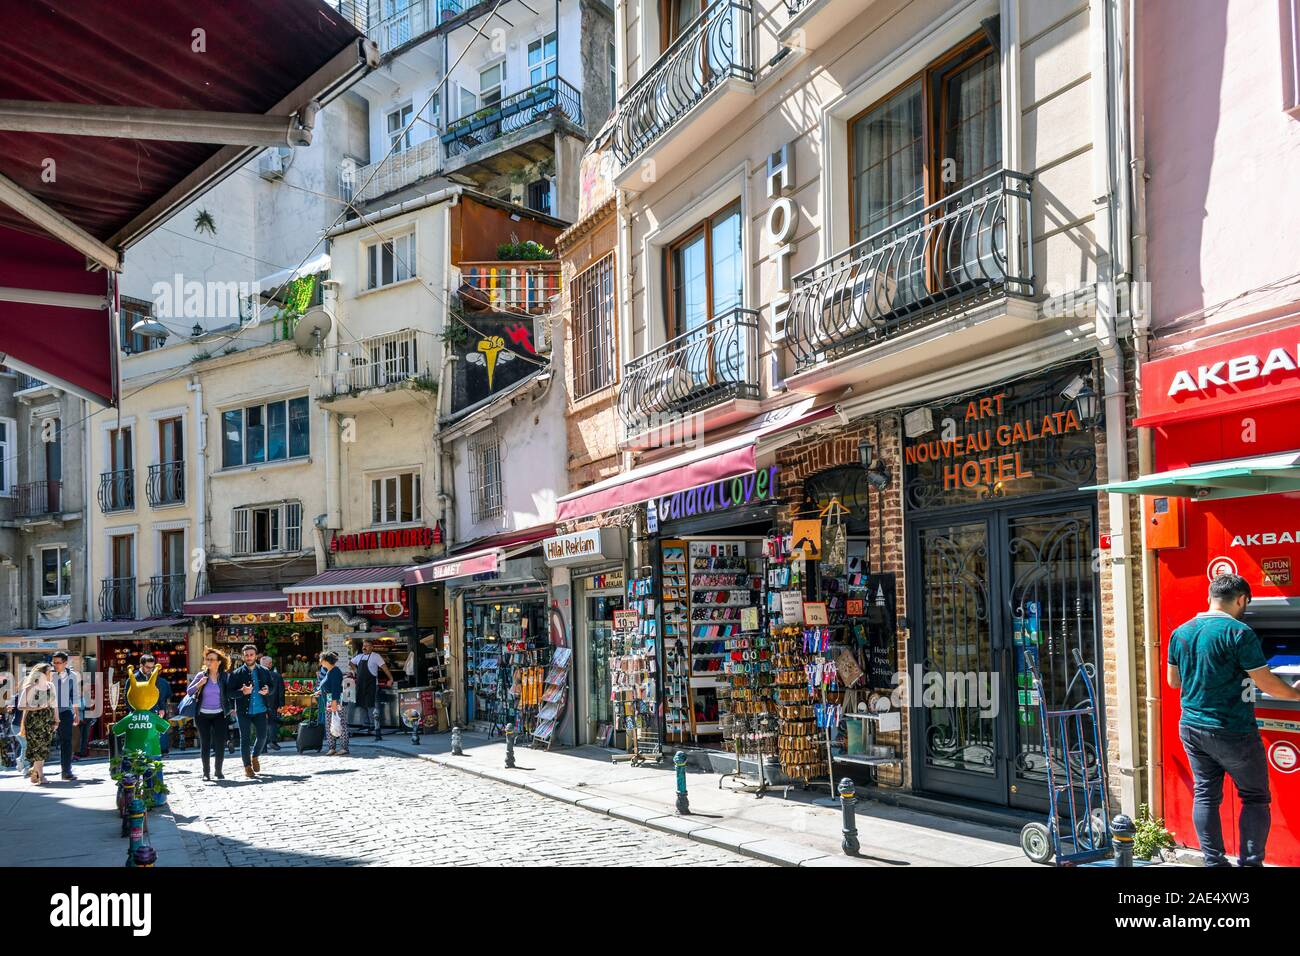 Tourists walk past colorful souvenir and gift shops and cafes on a busy summer day in the Galata Karakoy district of Istanbul, Turkey Stock Photo